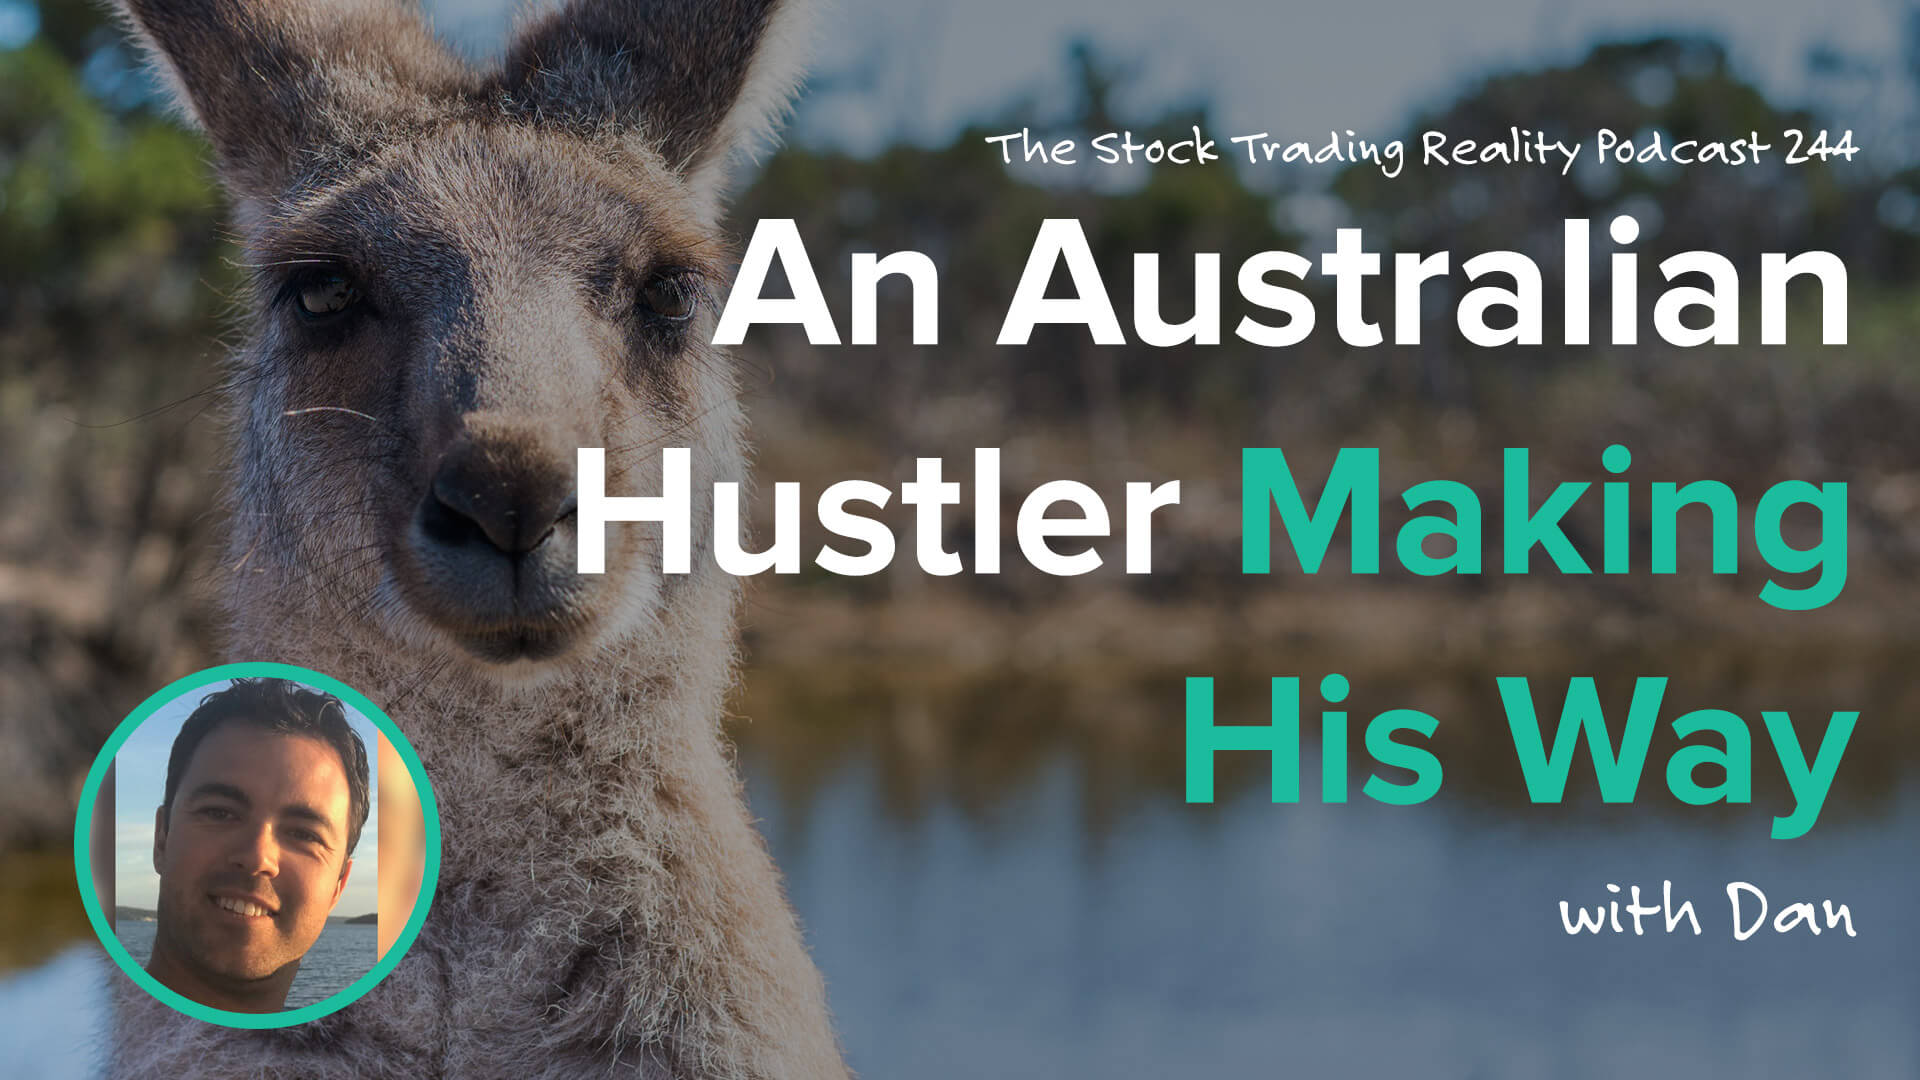 An Australian Hustler Making His Way